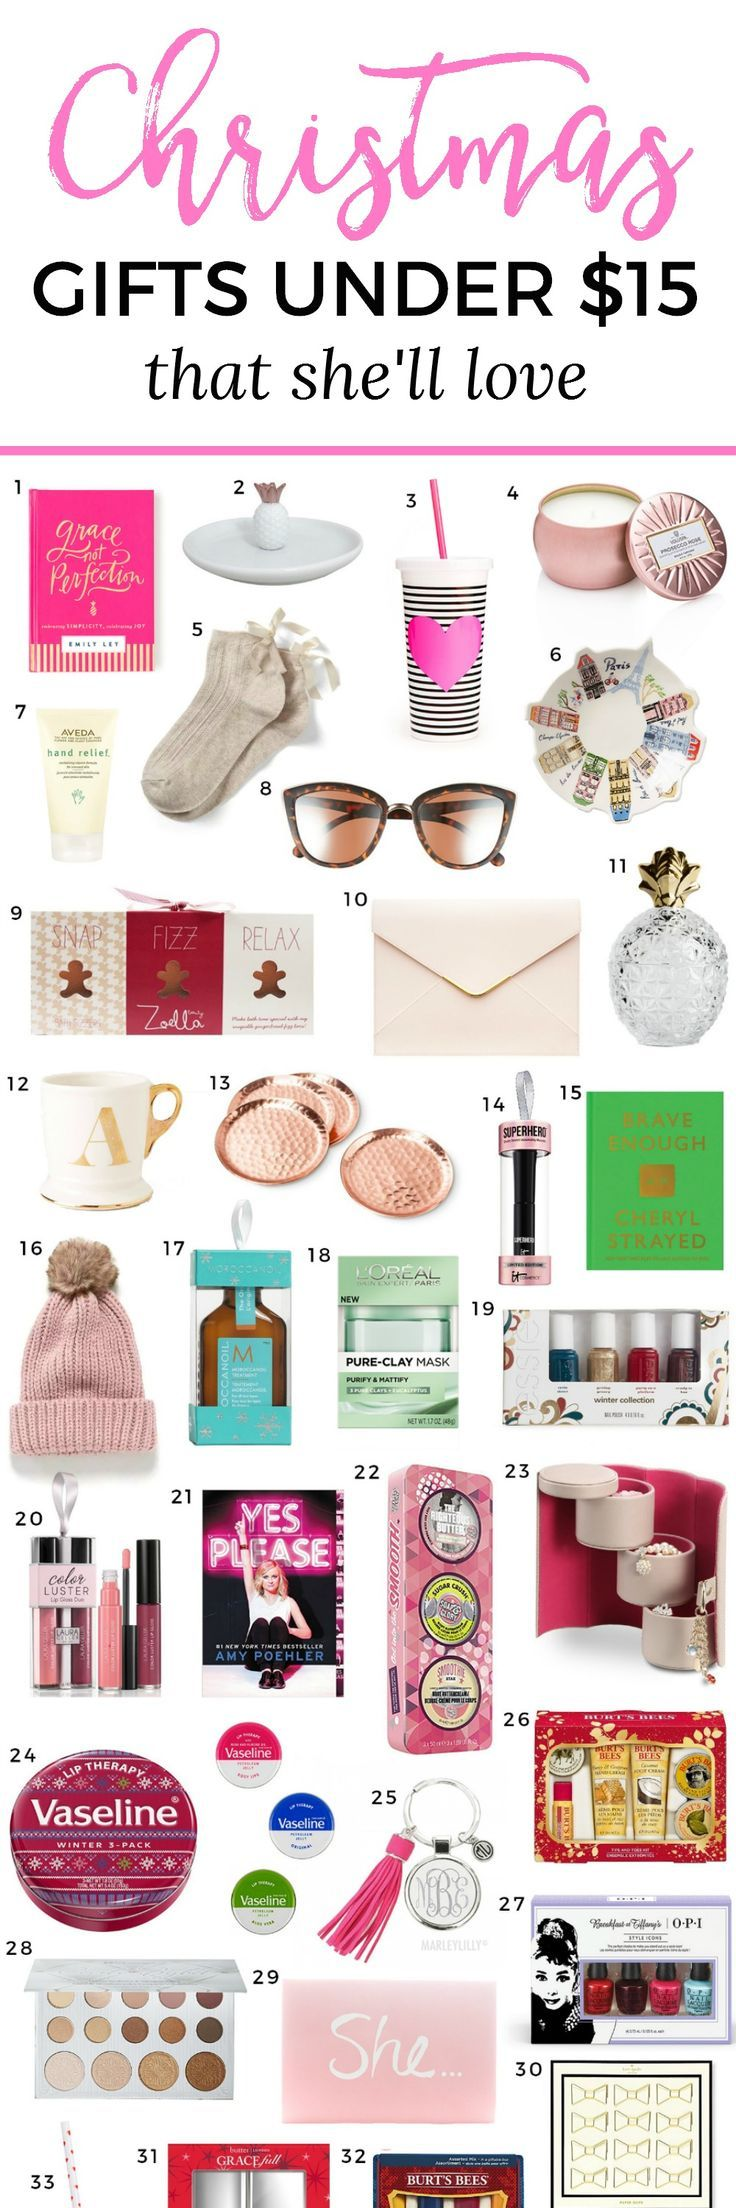 The Best Christmas Gift Ideas for Women Under $15 | Gifts for Women ...